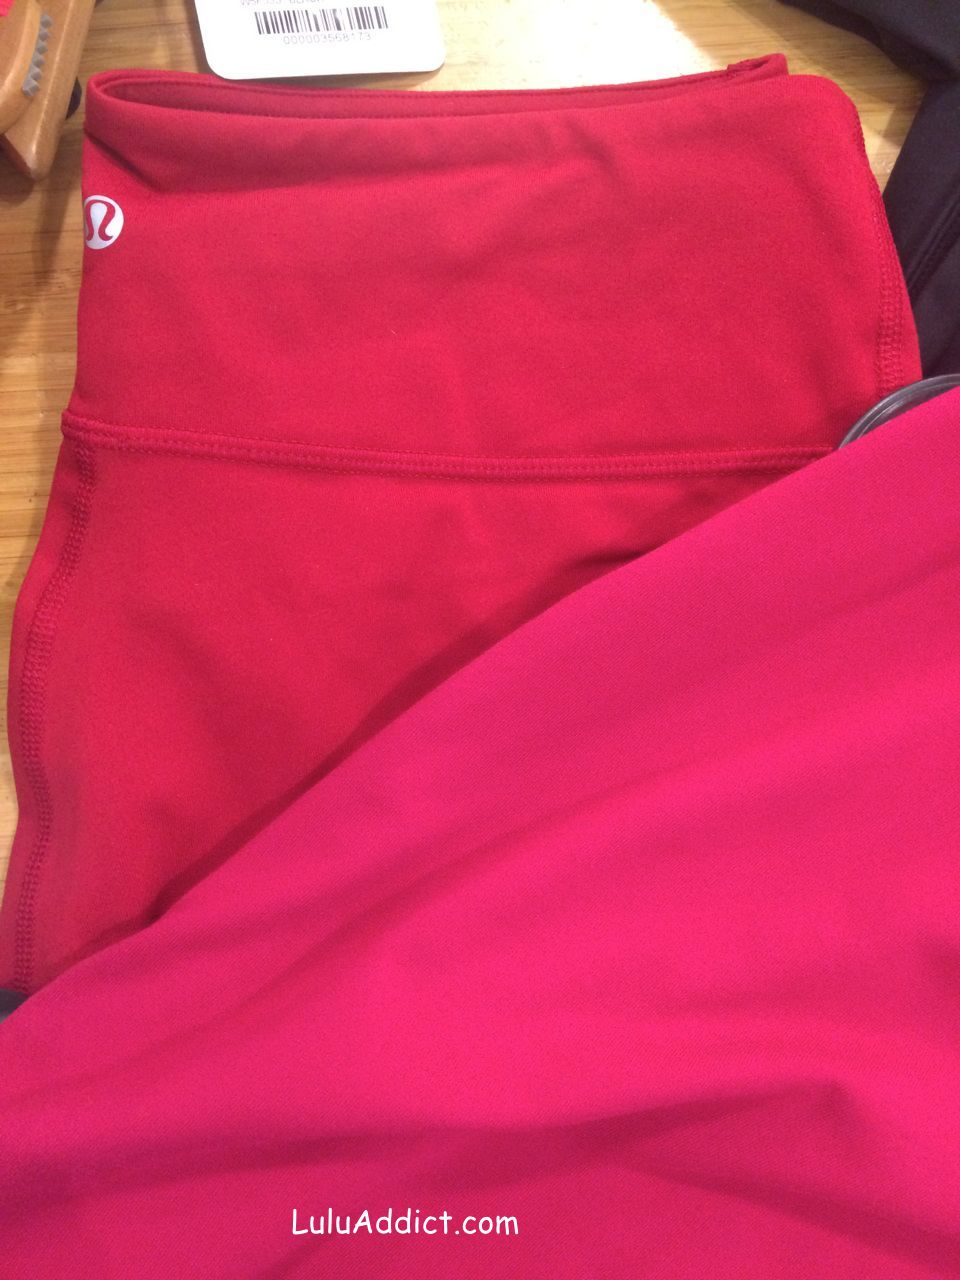 lululemon deepest cranberry wunder under pant